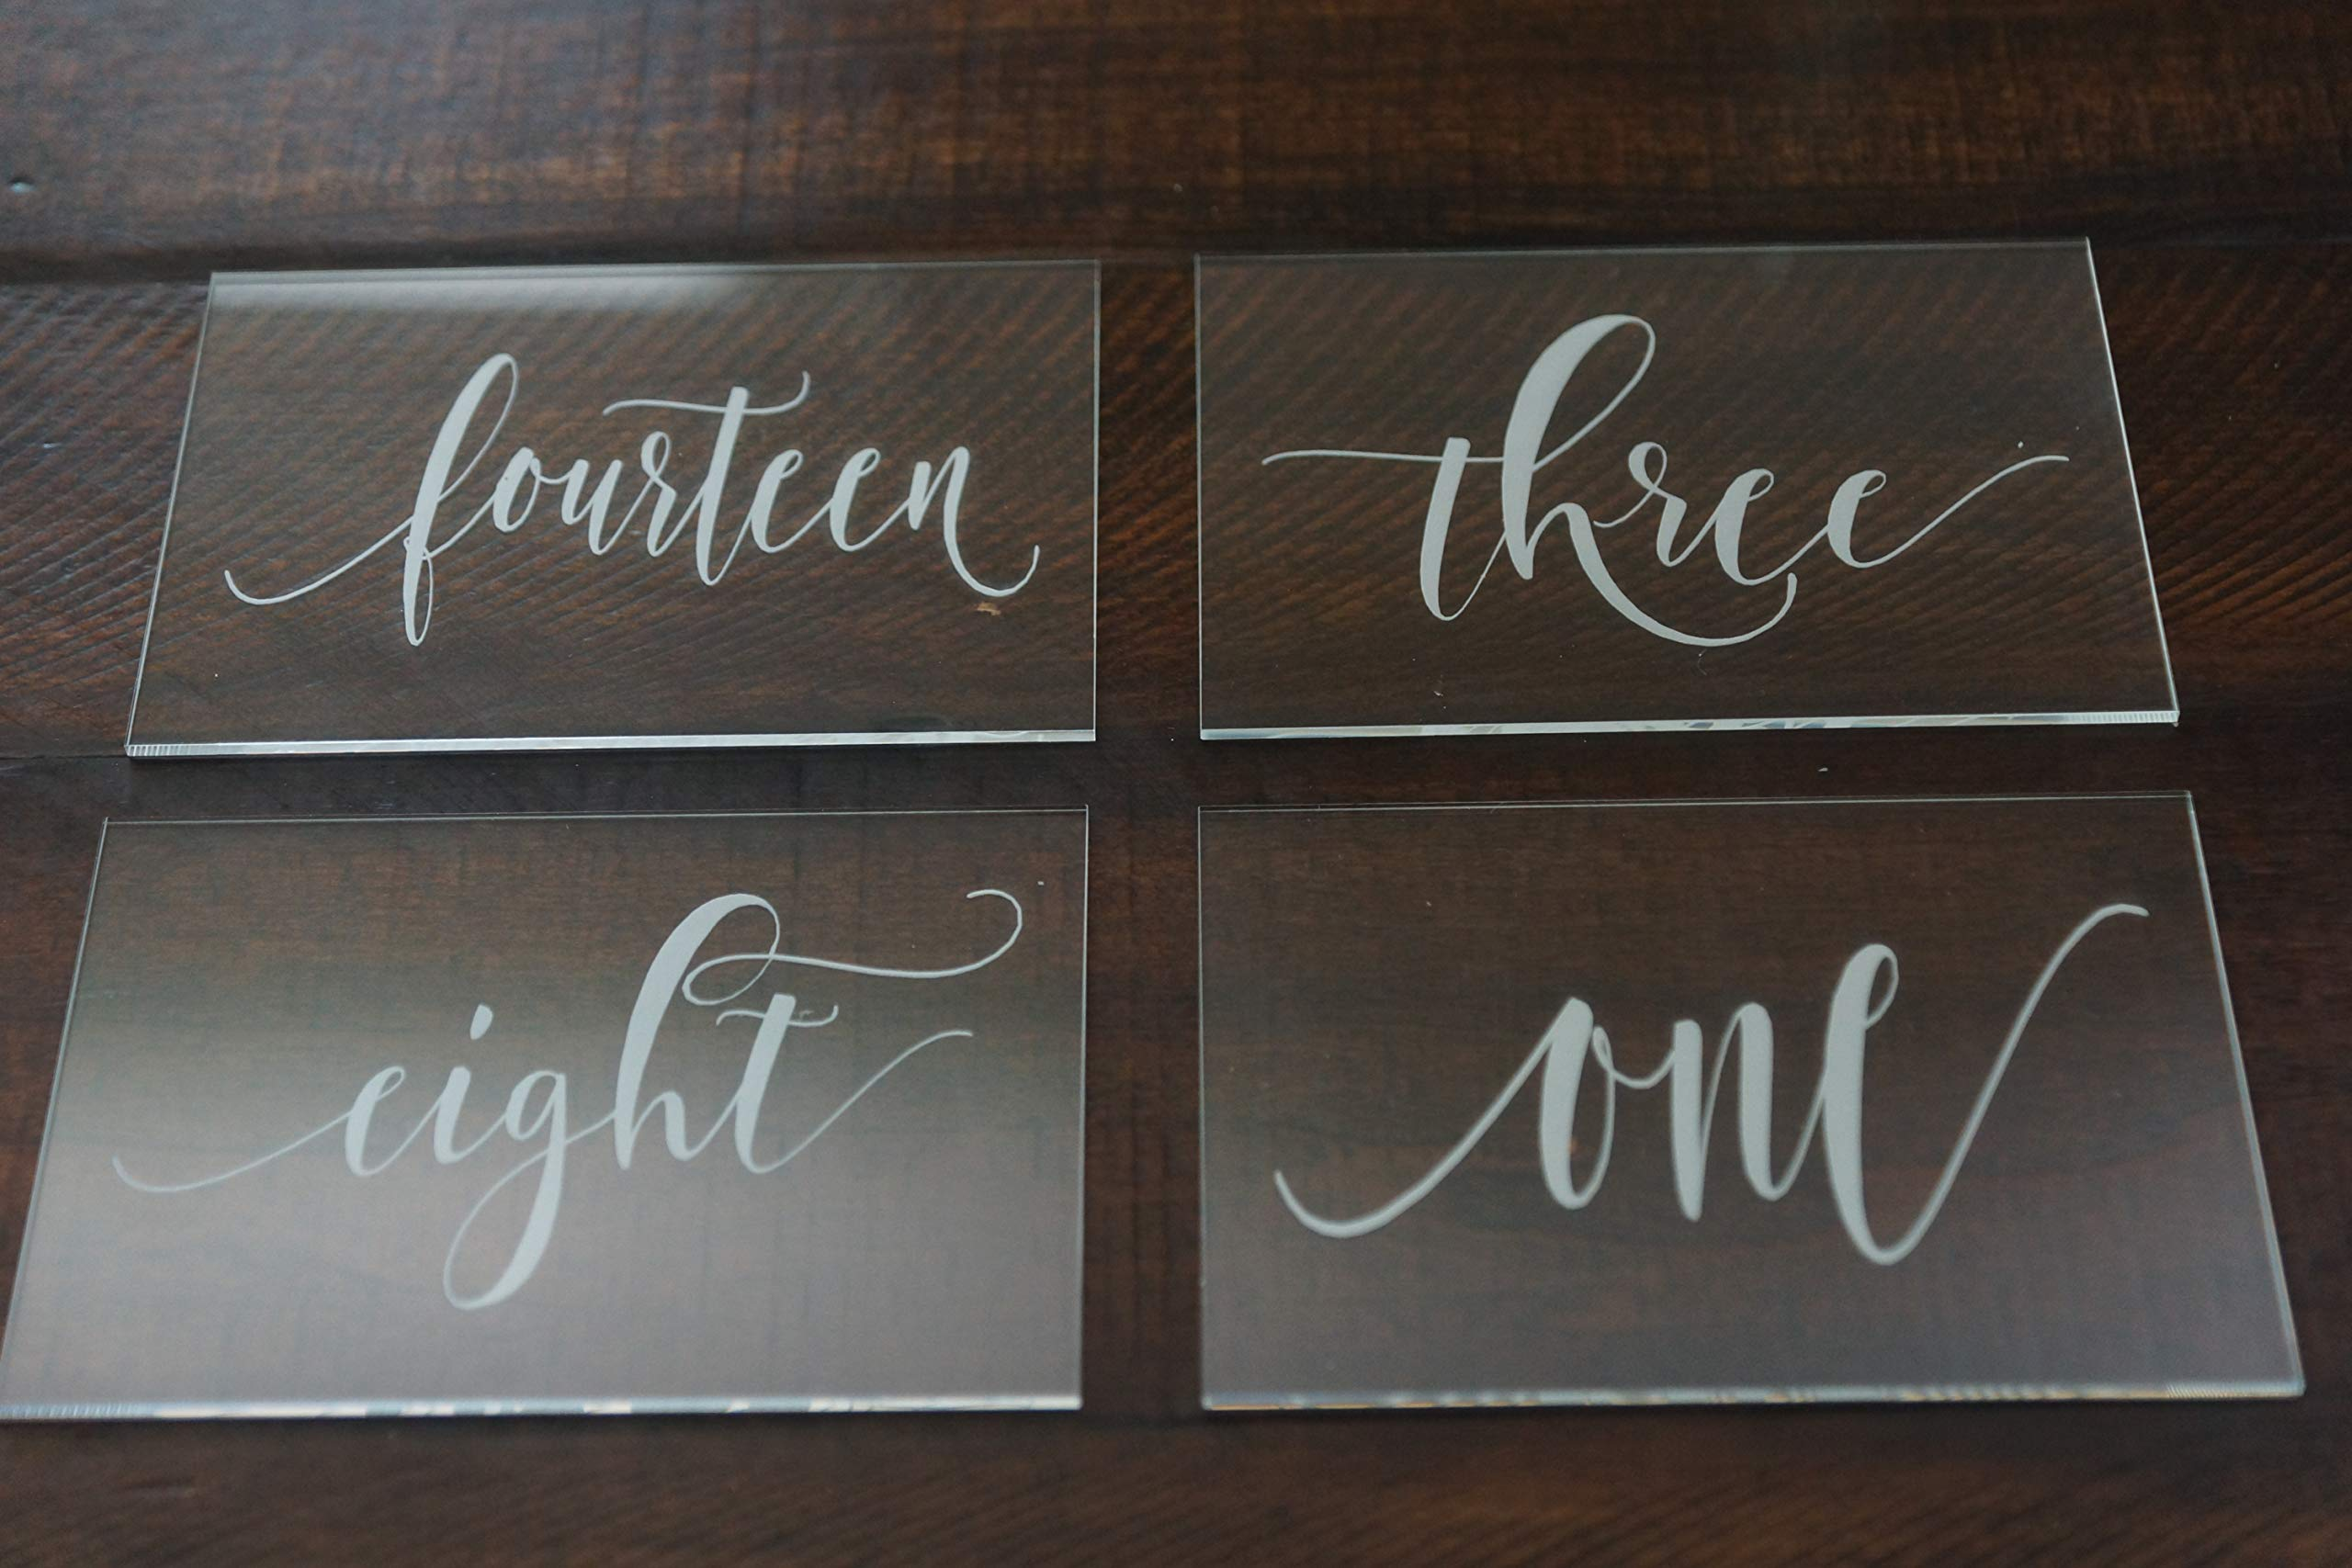 Set of 20 Acrylic Calligraphy Table Numbers   Wedding Event Shower Reception Restaurant   Glass like Clear Modern Formal Elegant Vintage Rustic   Sign Placard Card   Lettering Script Handwriting Print by Generic (Image #5)